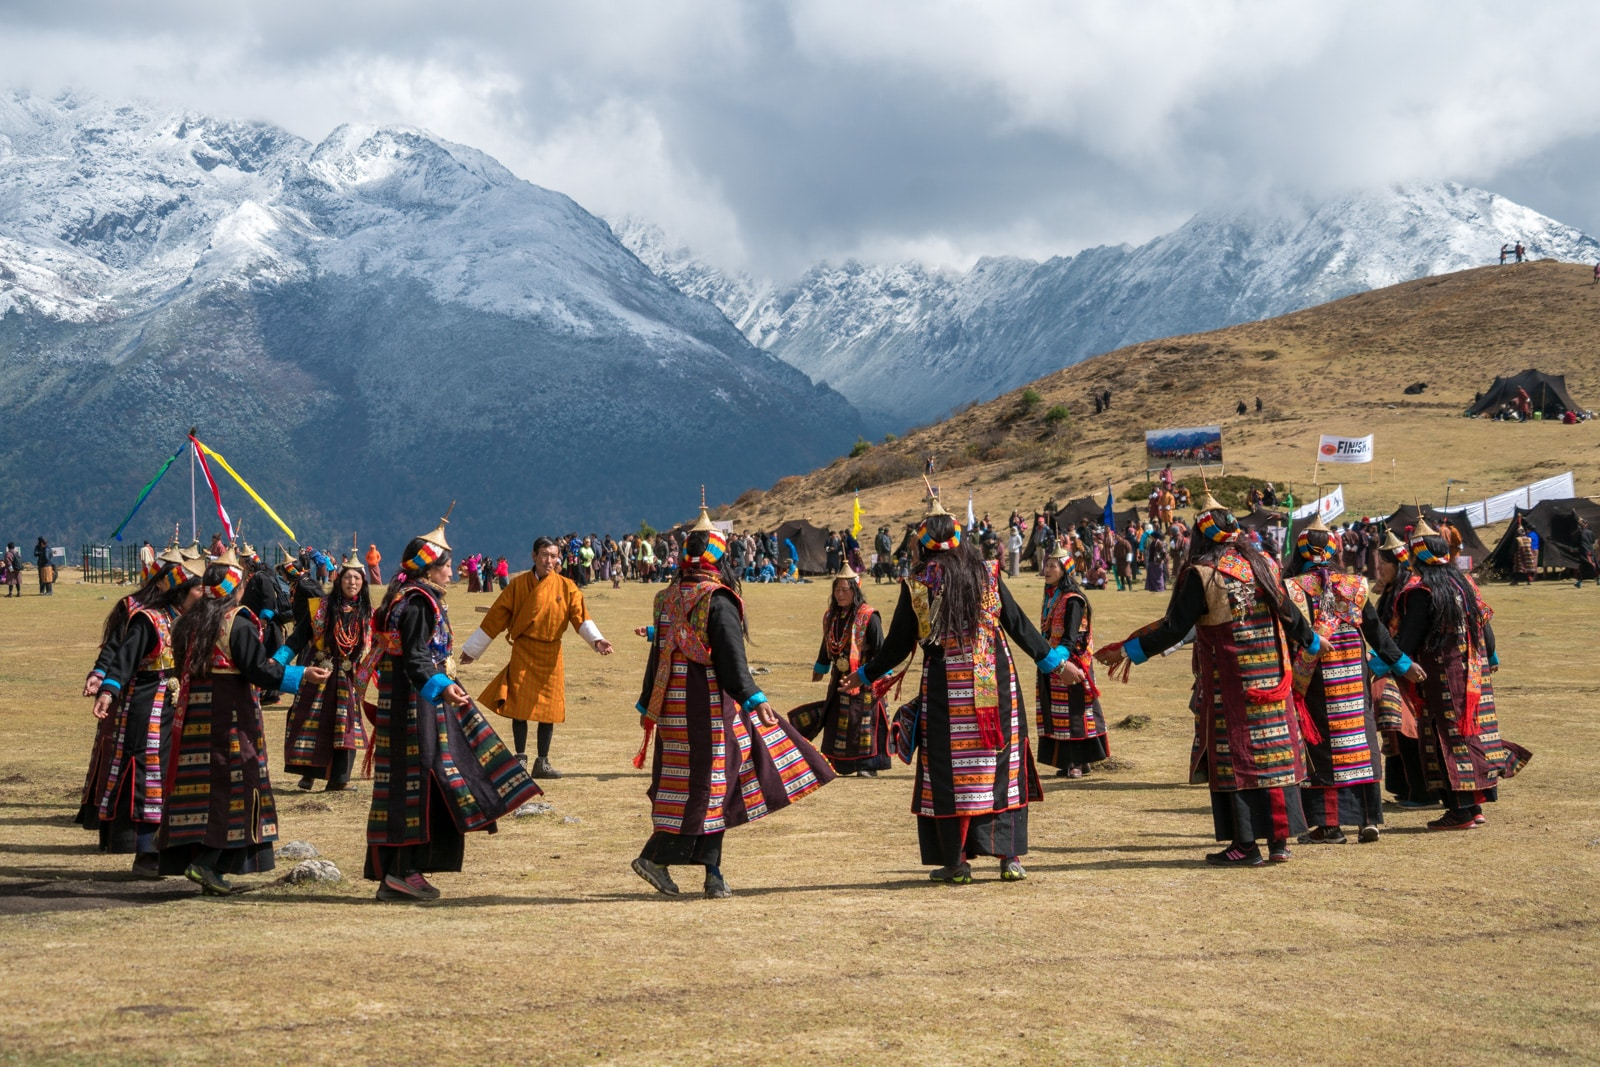 Photos of the 2017 Royal Highlander Festival in Bhutan - Women dancing in a circle at the festival - Lost With Purpose travel blog